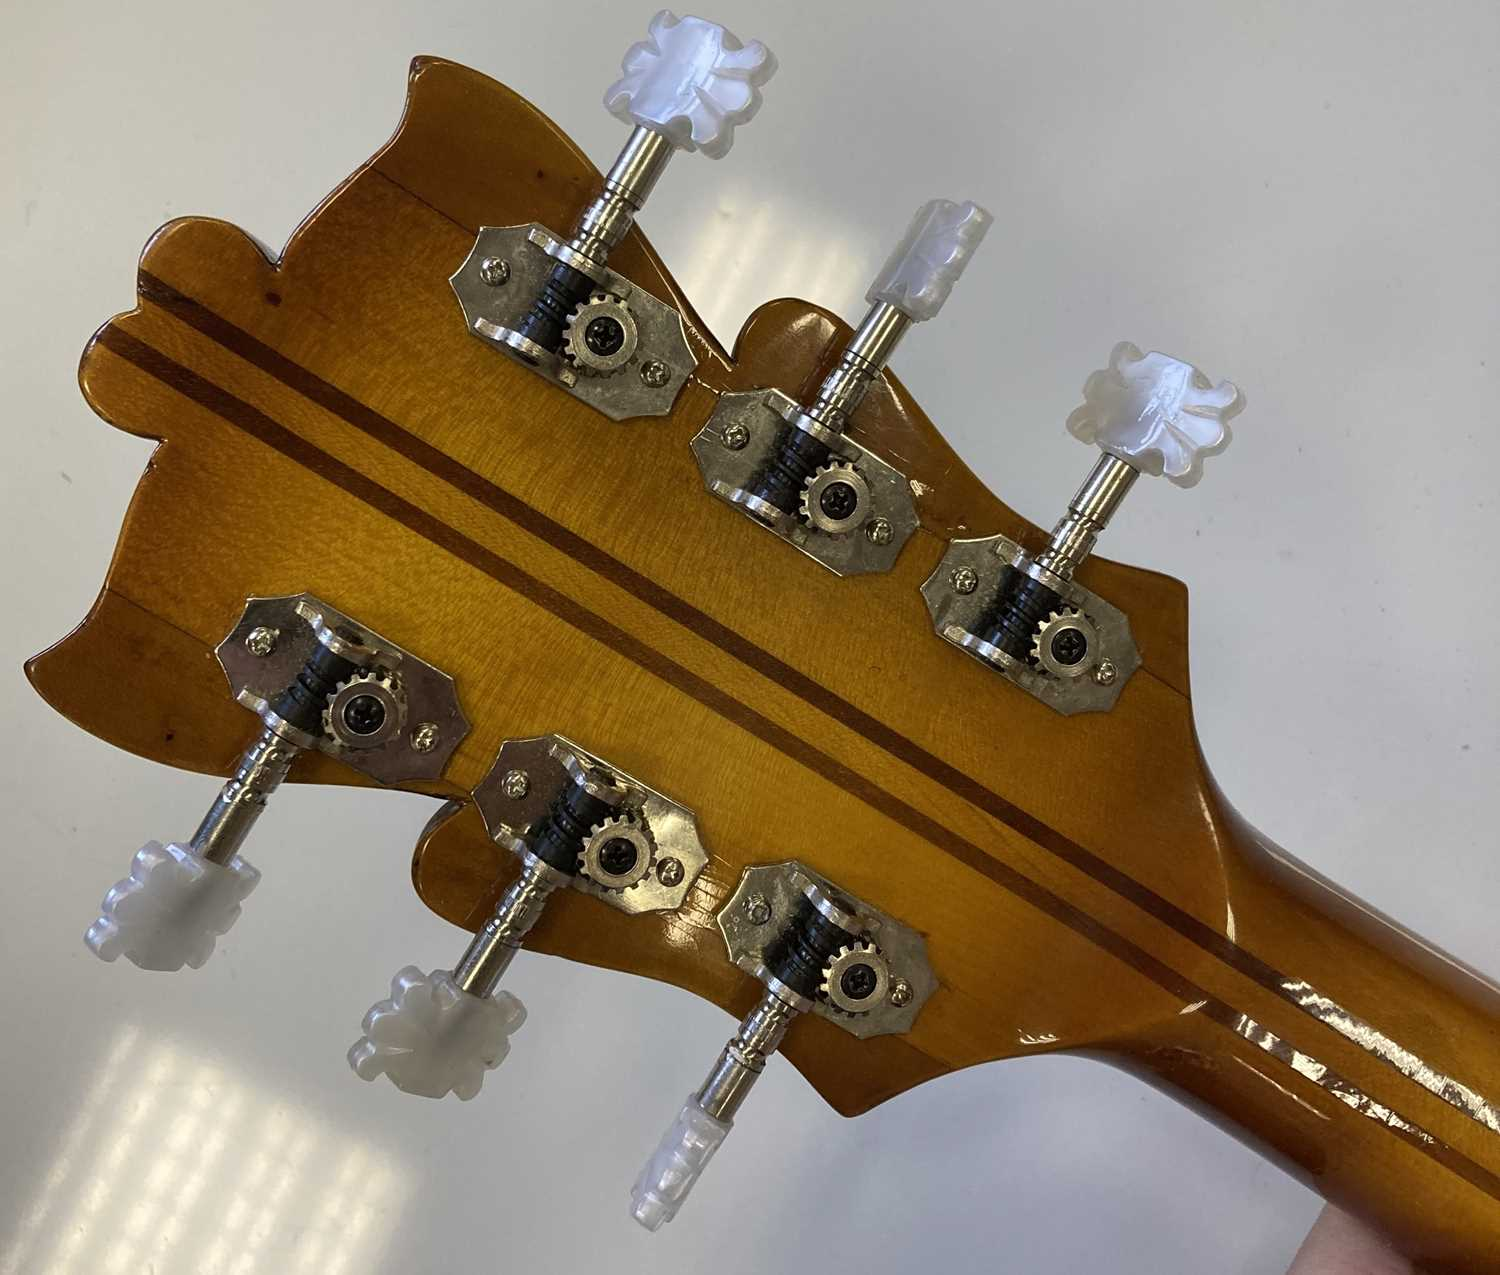 HOFNER - 1957 COMMITTEE ELECTRIC GUITAR - USED AS RESIDENT GUITAR AT THE 2'IS COFFEE CLUB - Image 12 of 17